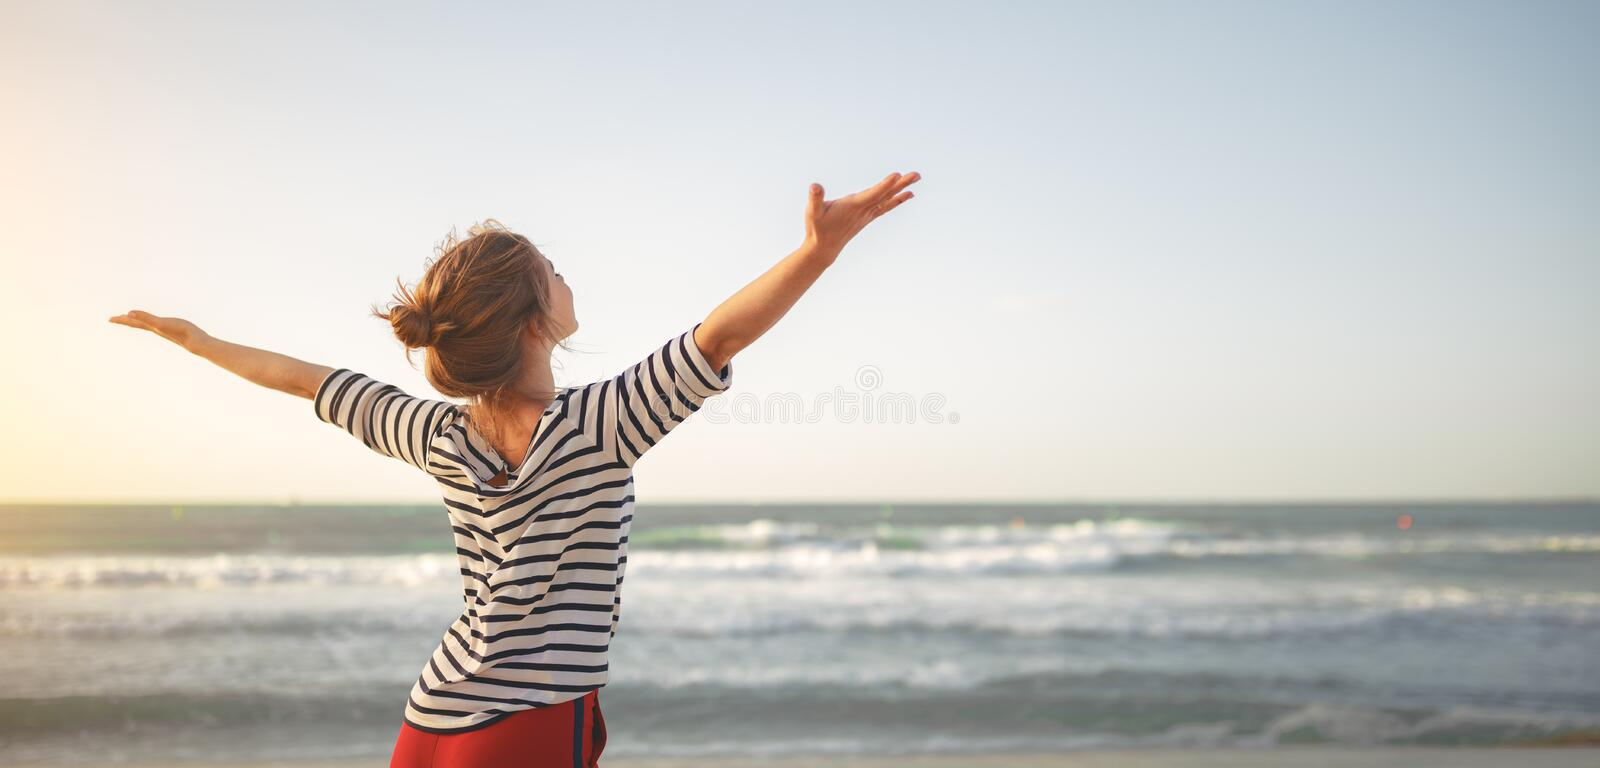 Happy woman enjoying freedom with open hands on sea royalty free stock image